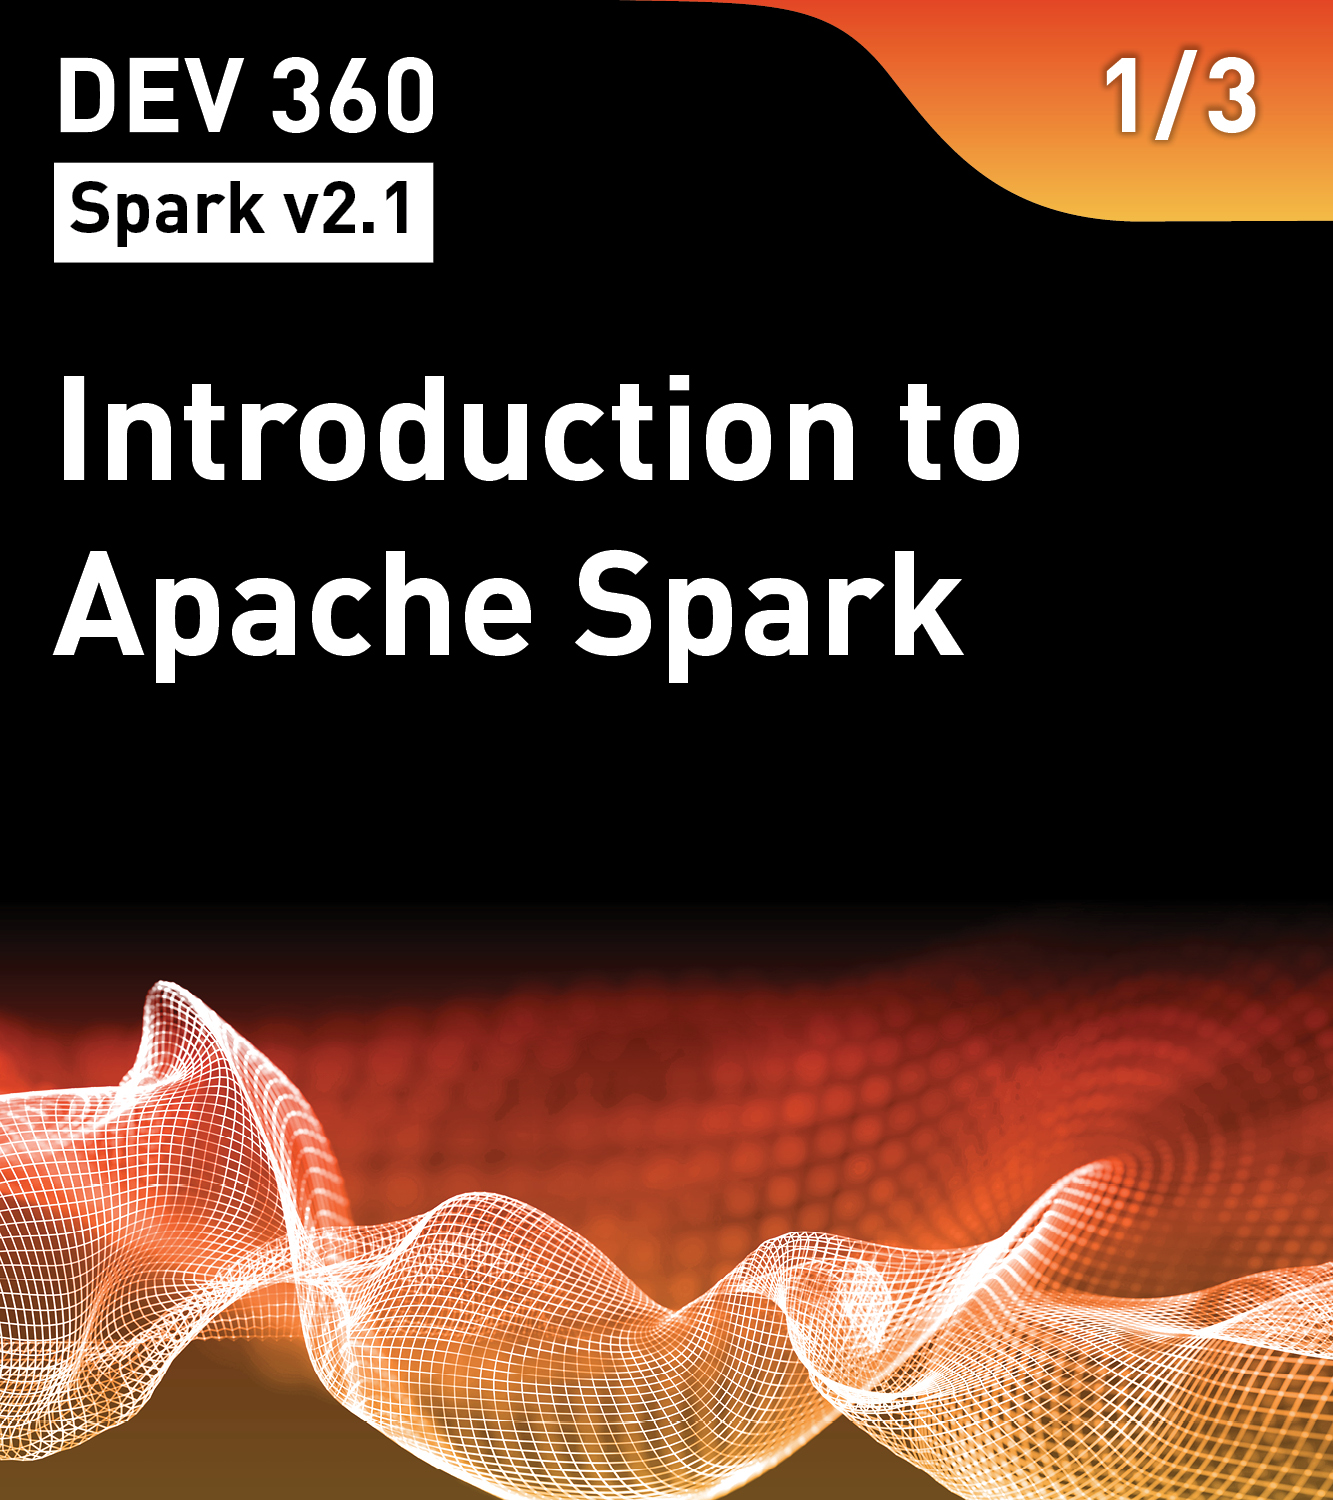 Introduction to Apache Spark (Spark v2.1)